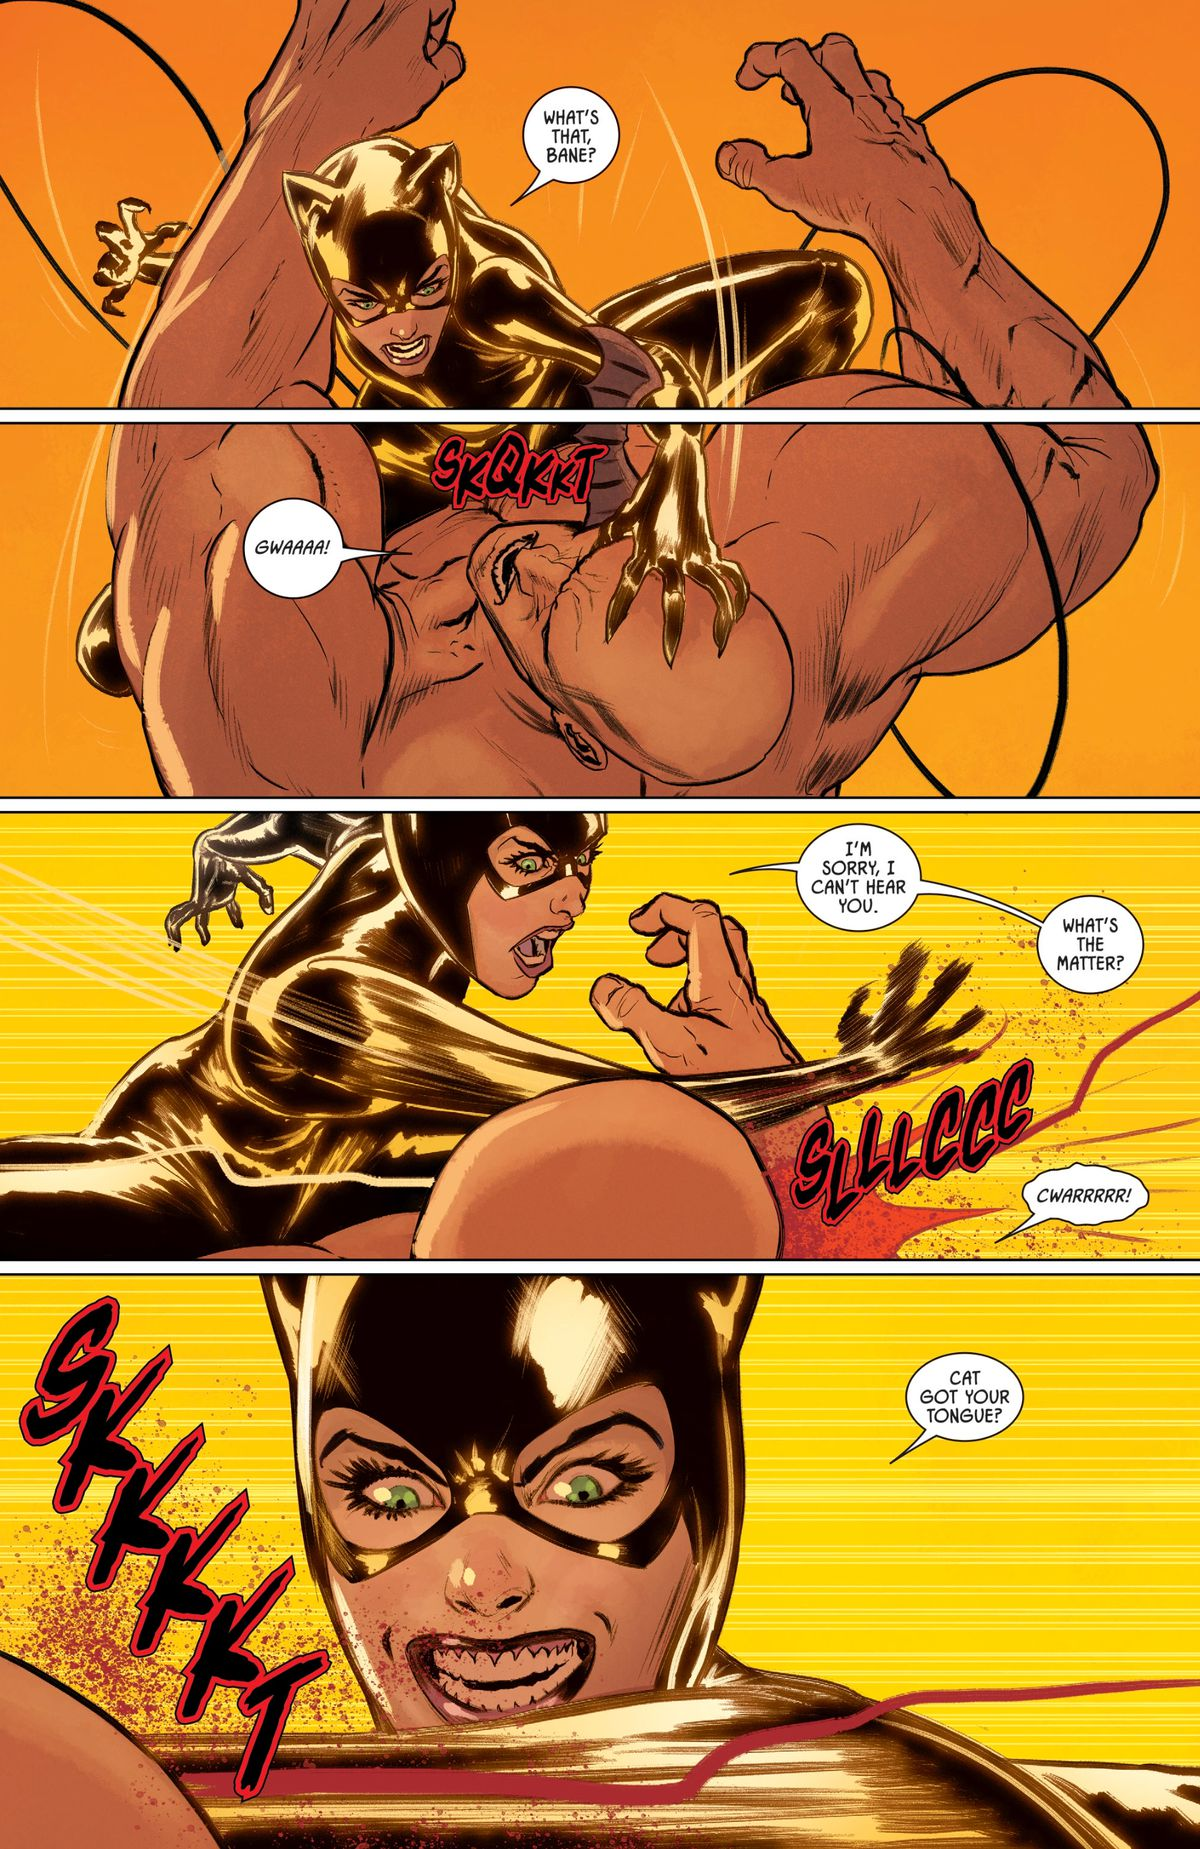 Catwoman taunts Bbane while mercilessly scratching his face with her claws in Batman #82, DC Comics (2019).